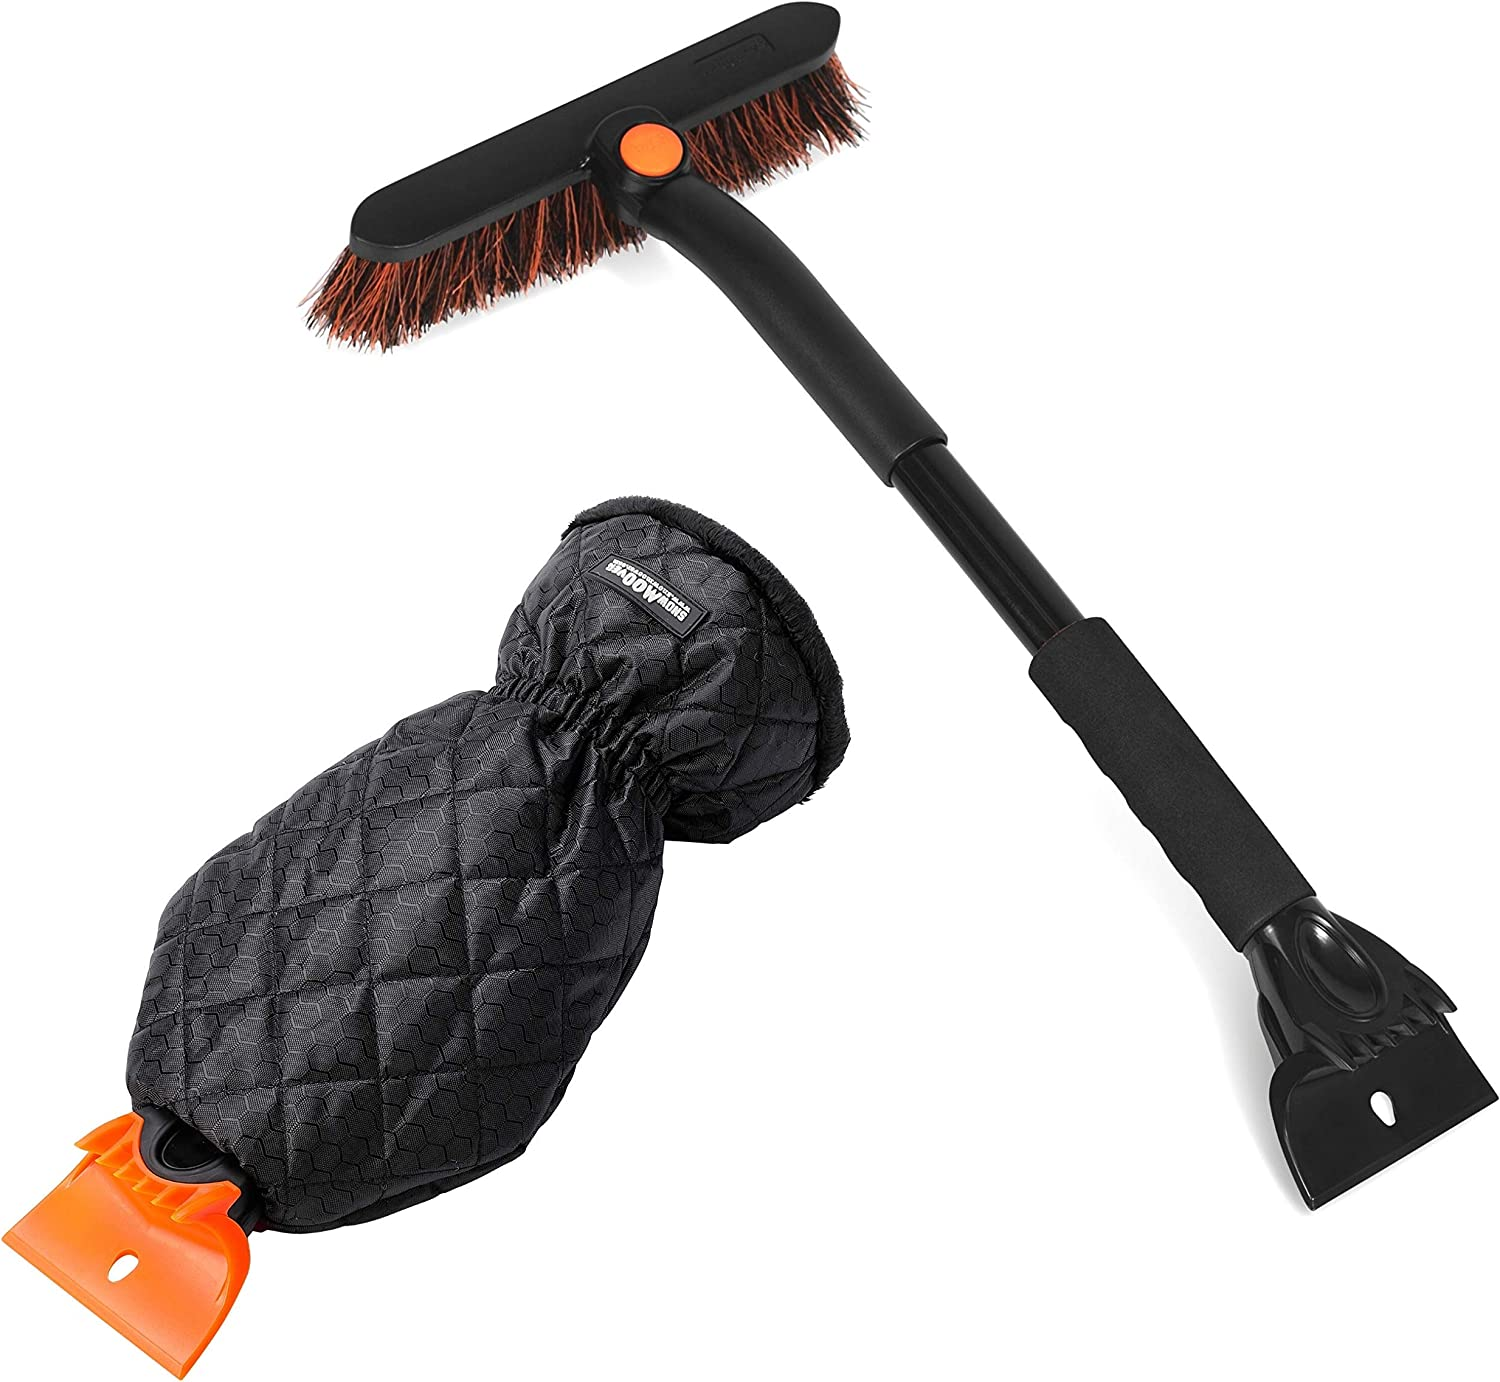 BIRDROCK HOME Compact Snow Brush and Ice Scraper Mitt Bundle - Car Windshield Ice and Snow Removal - Heavy Duty Ice Breaker and Scraper - Warm & Cozy Padded Glove - Durable Automotive Snow Brush